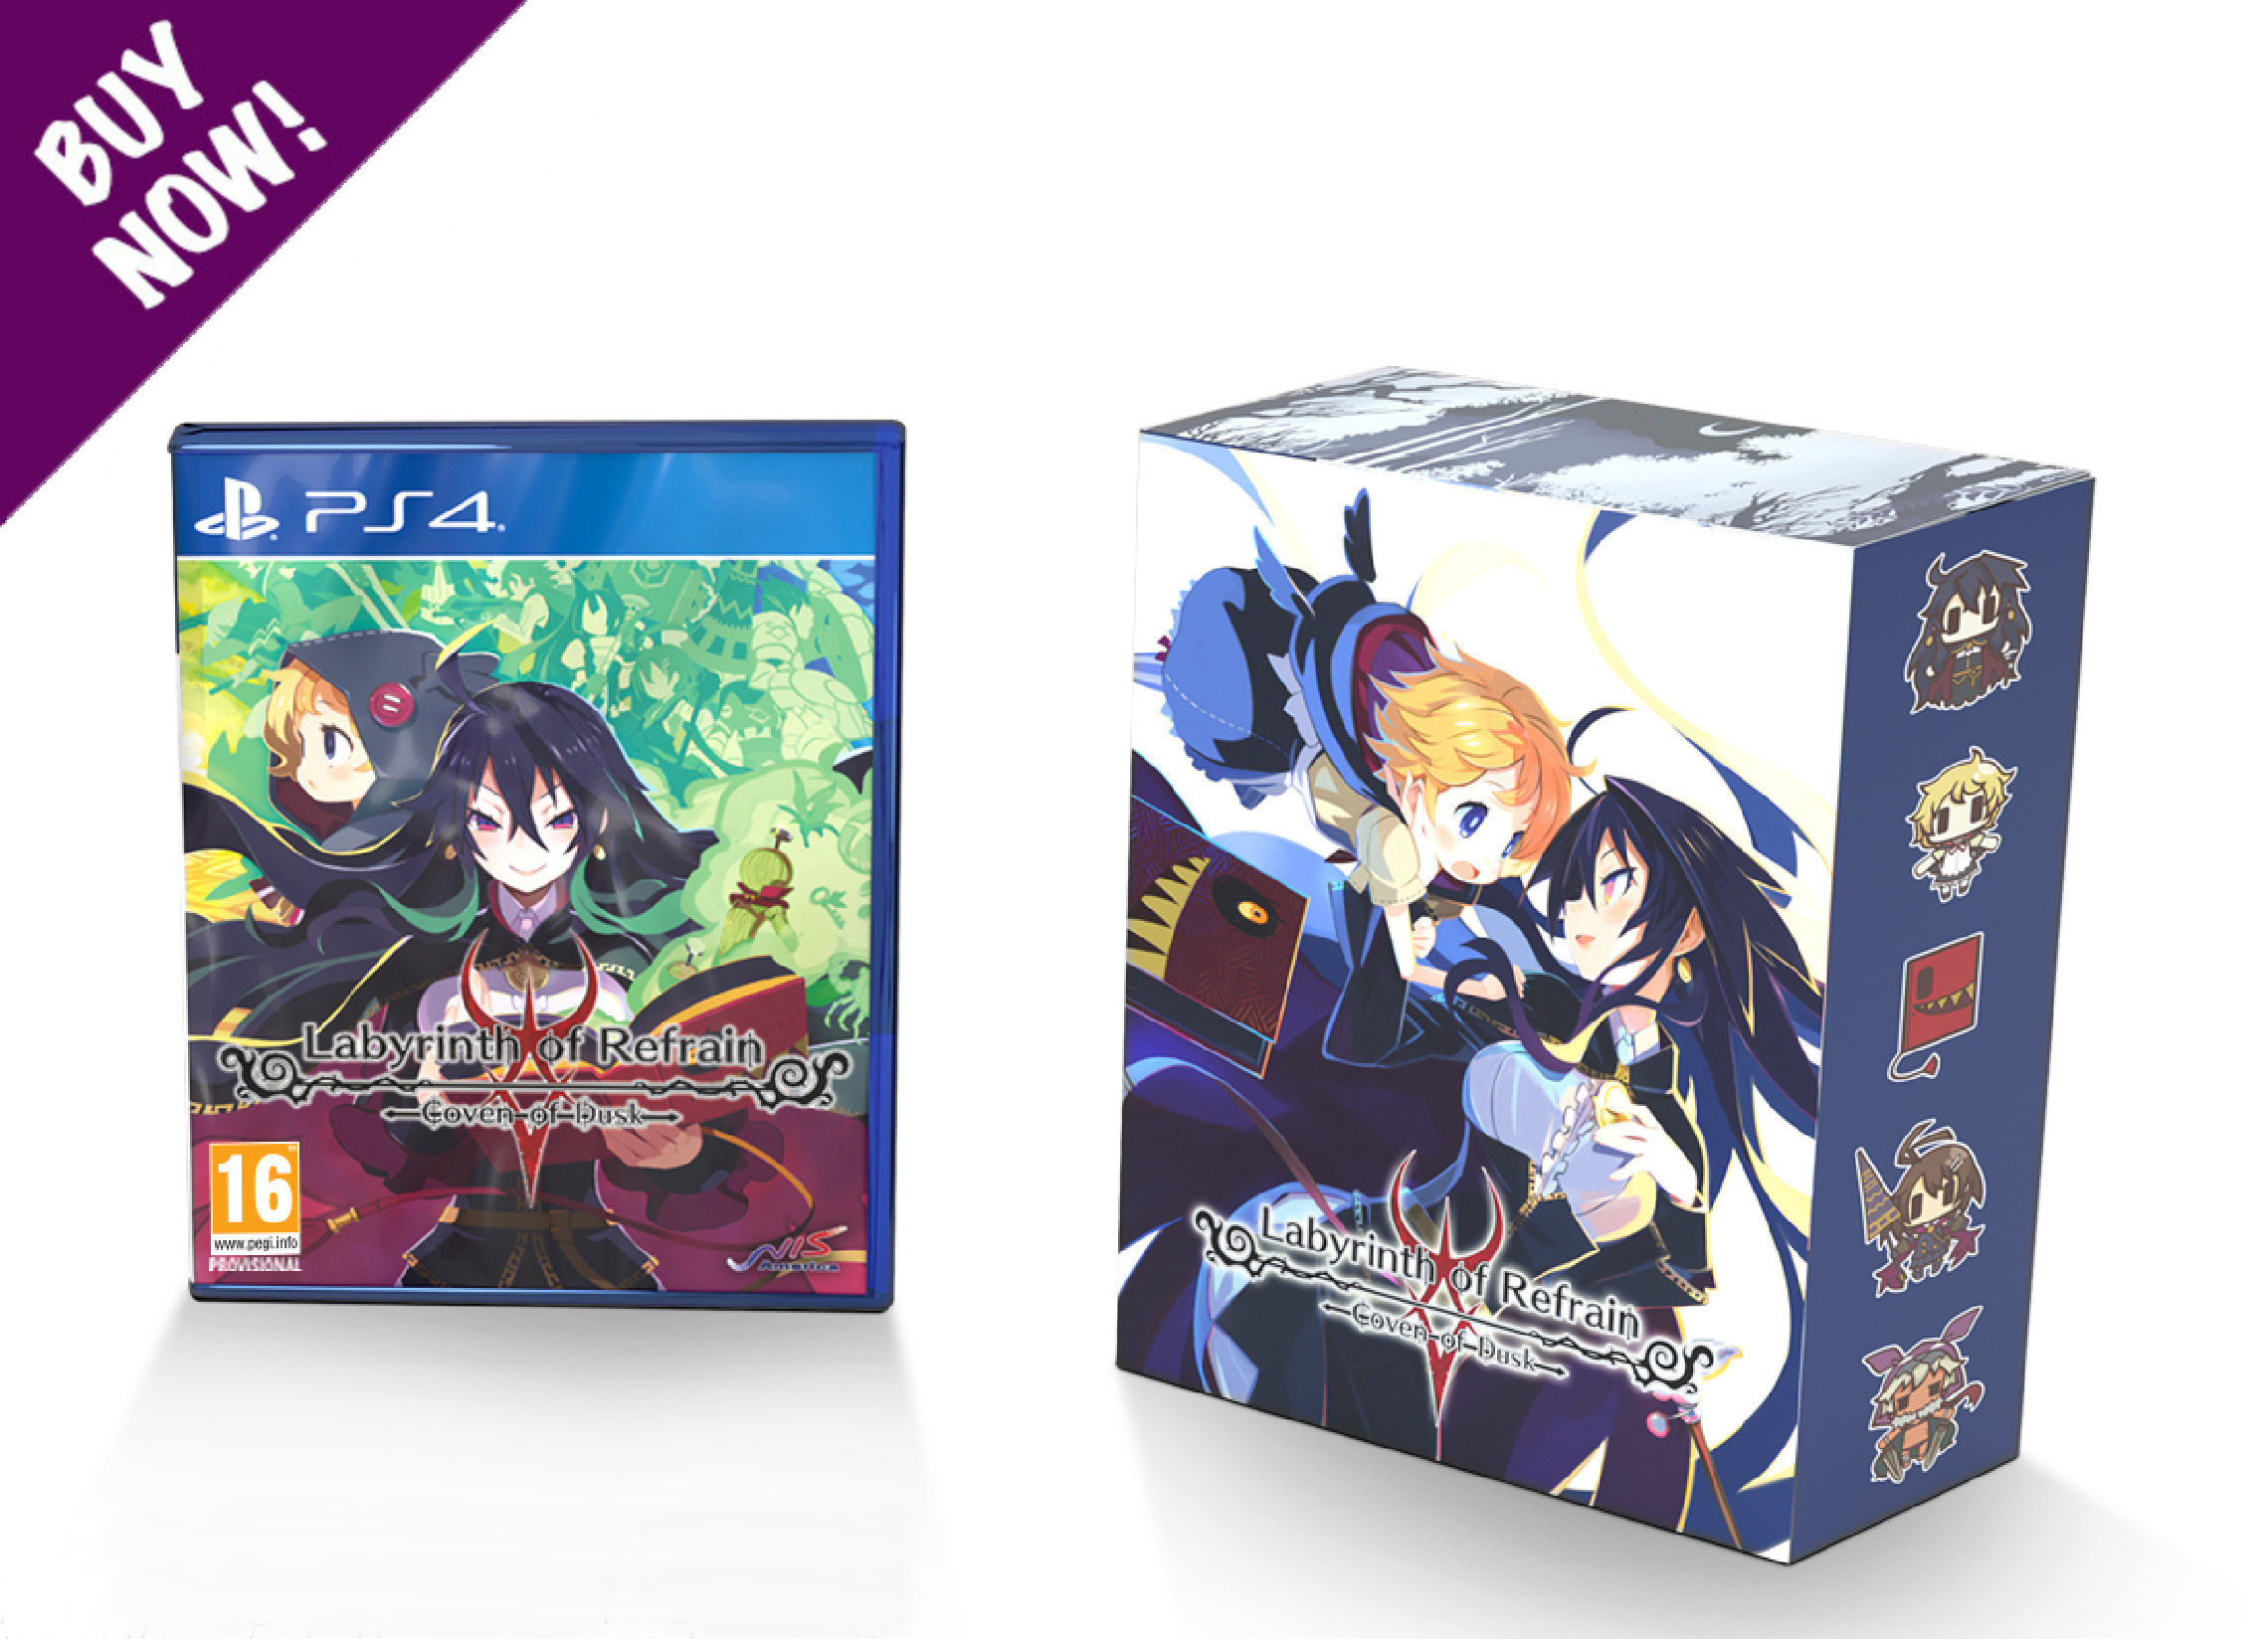 LABYRINTH OF REFRAIN: COVEN OF DUSK - PS4 - Limited Edition